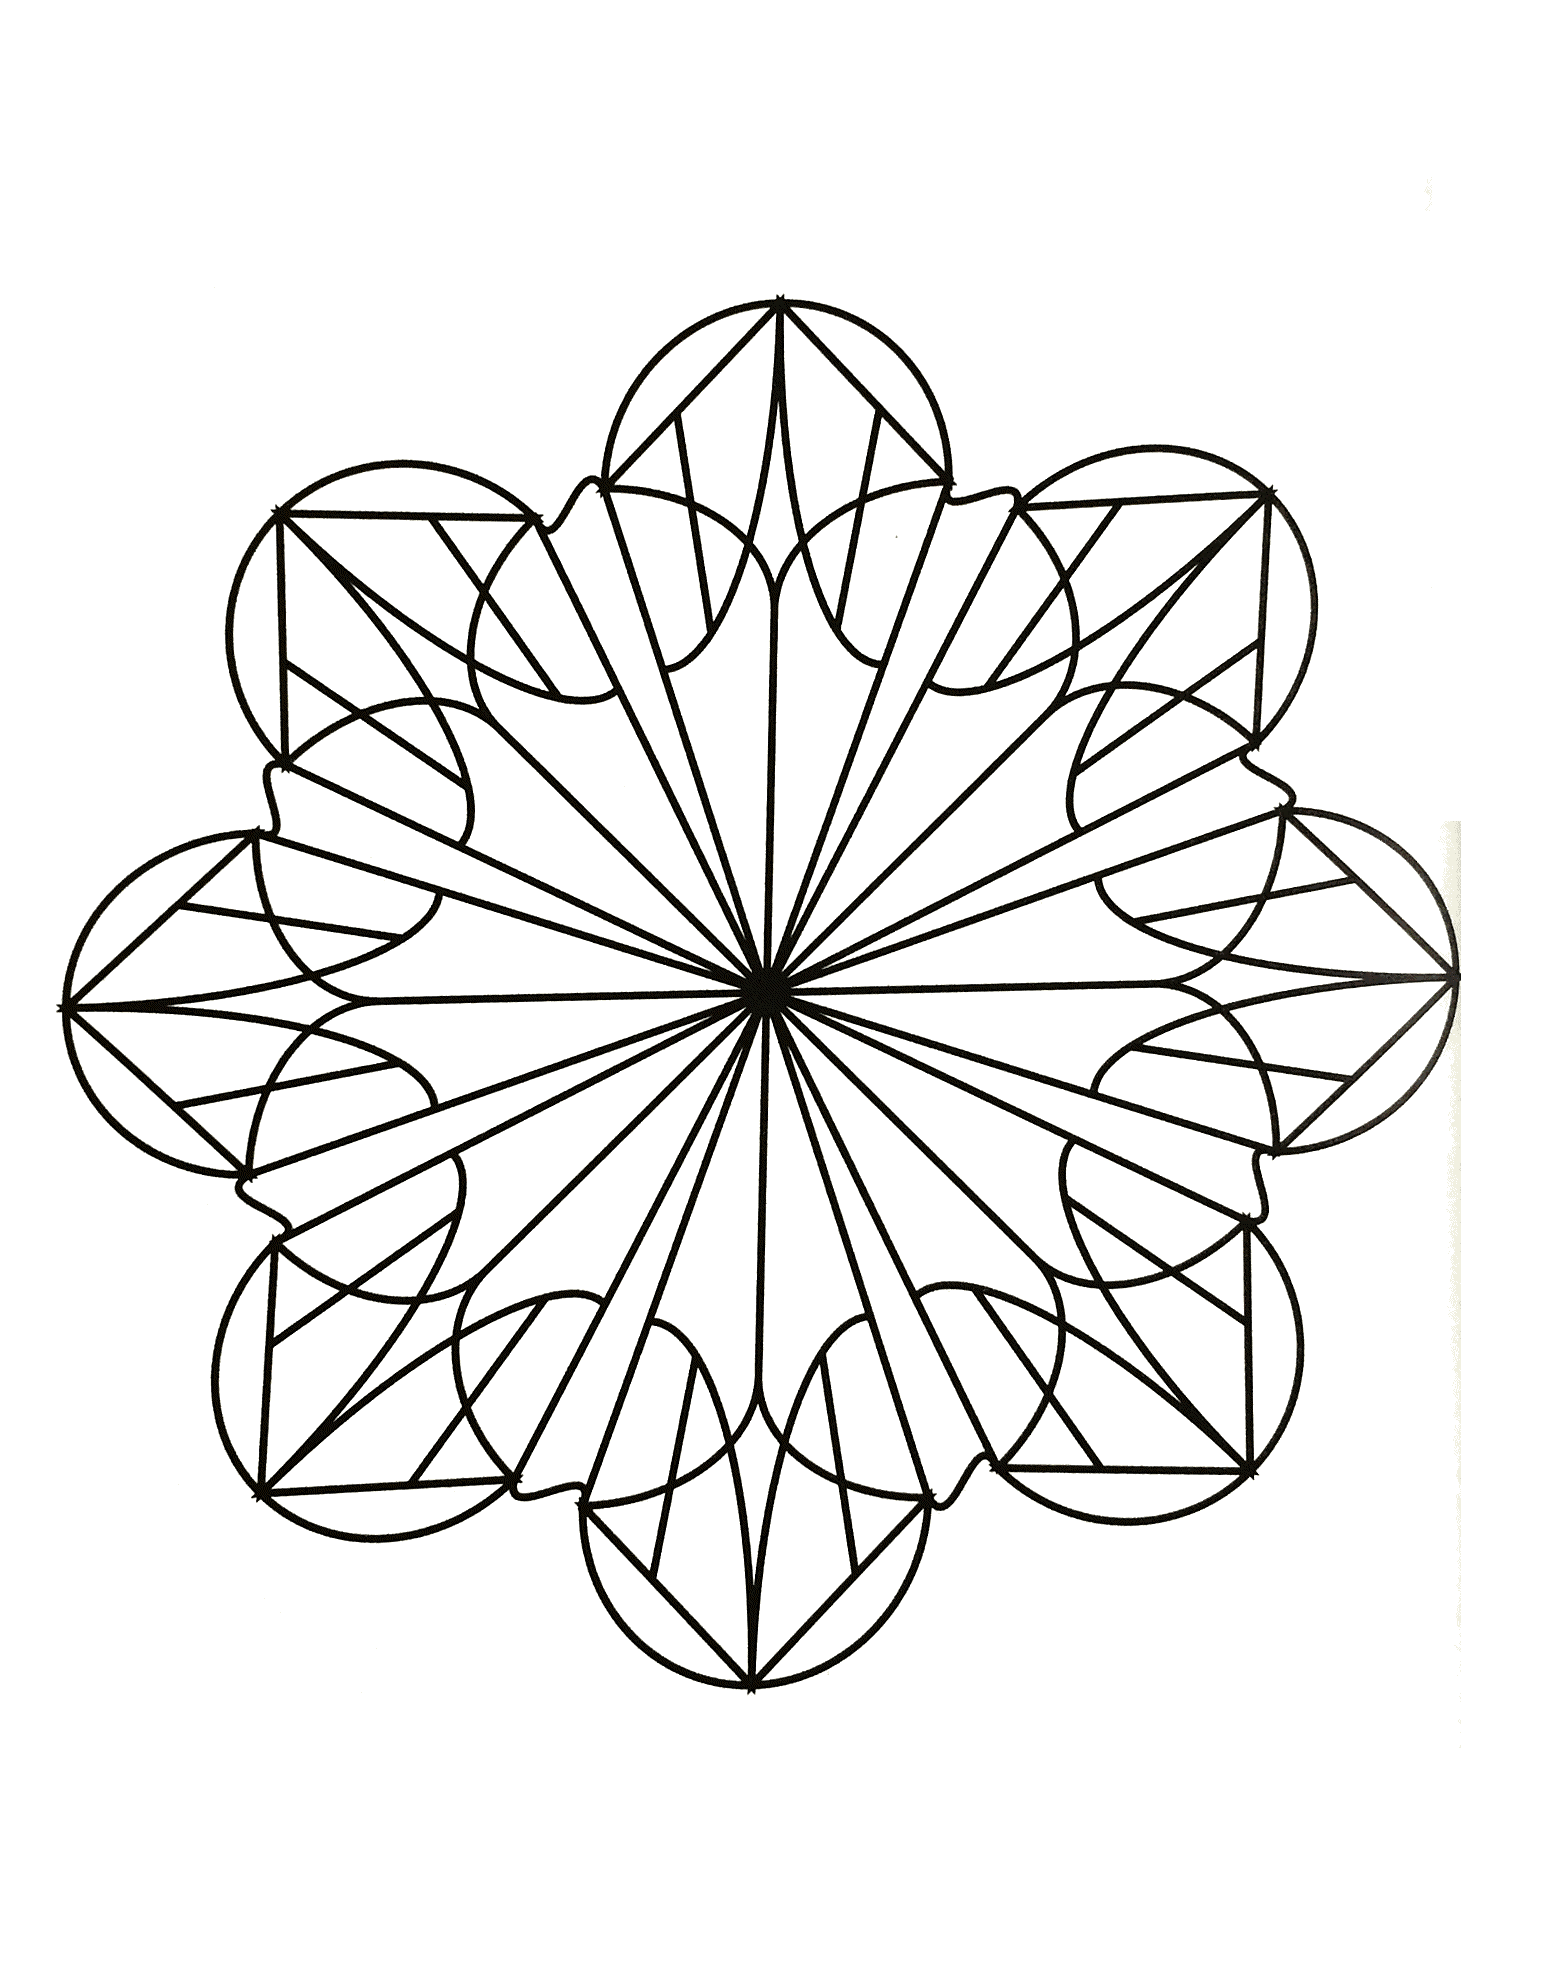 A Mandala coloring page easy to color, perfect for the children, with large areas to color. Do whatever it takes to get rid of any distractions that may interfere with your coloring.